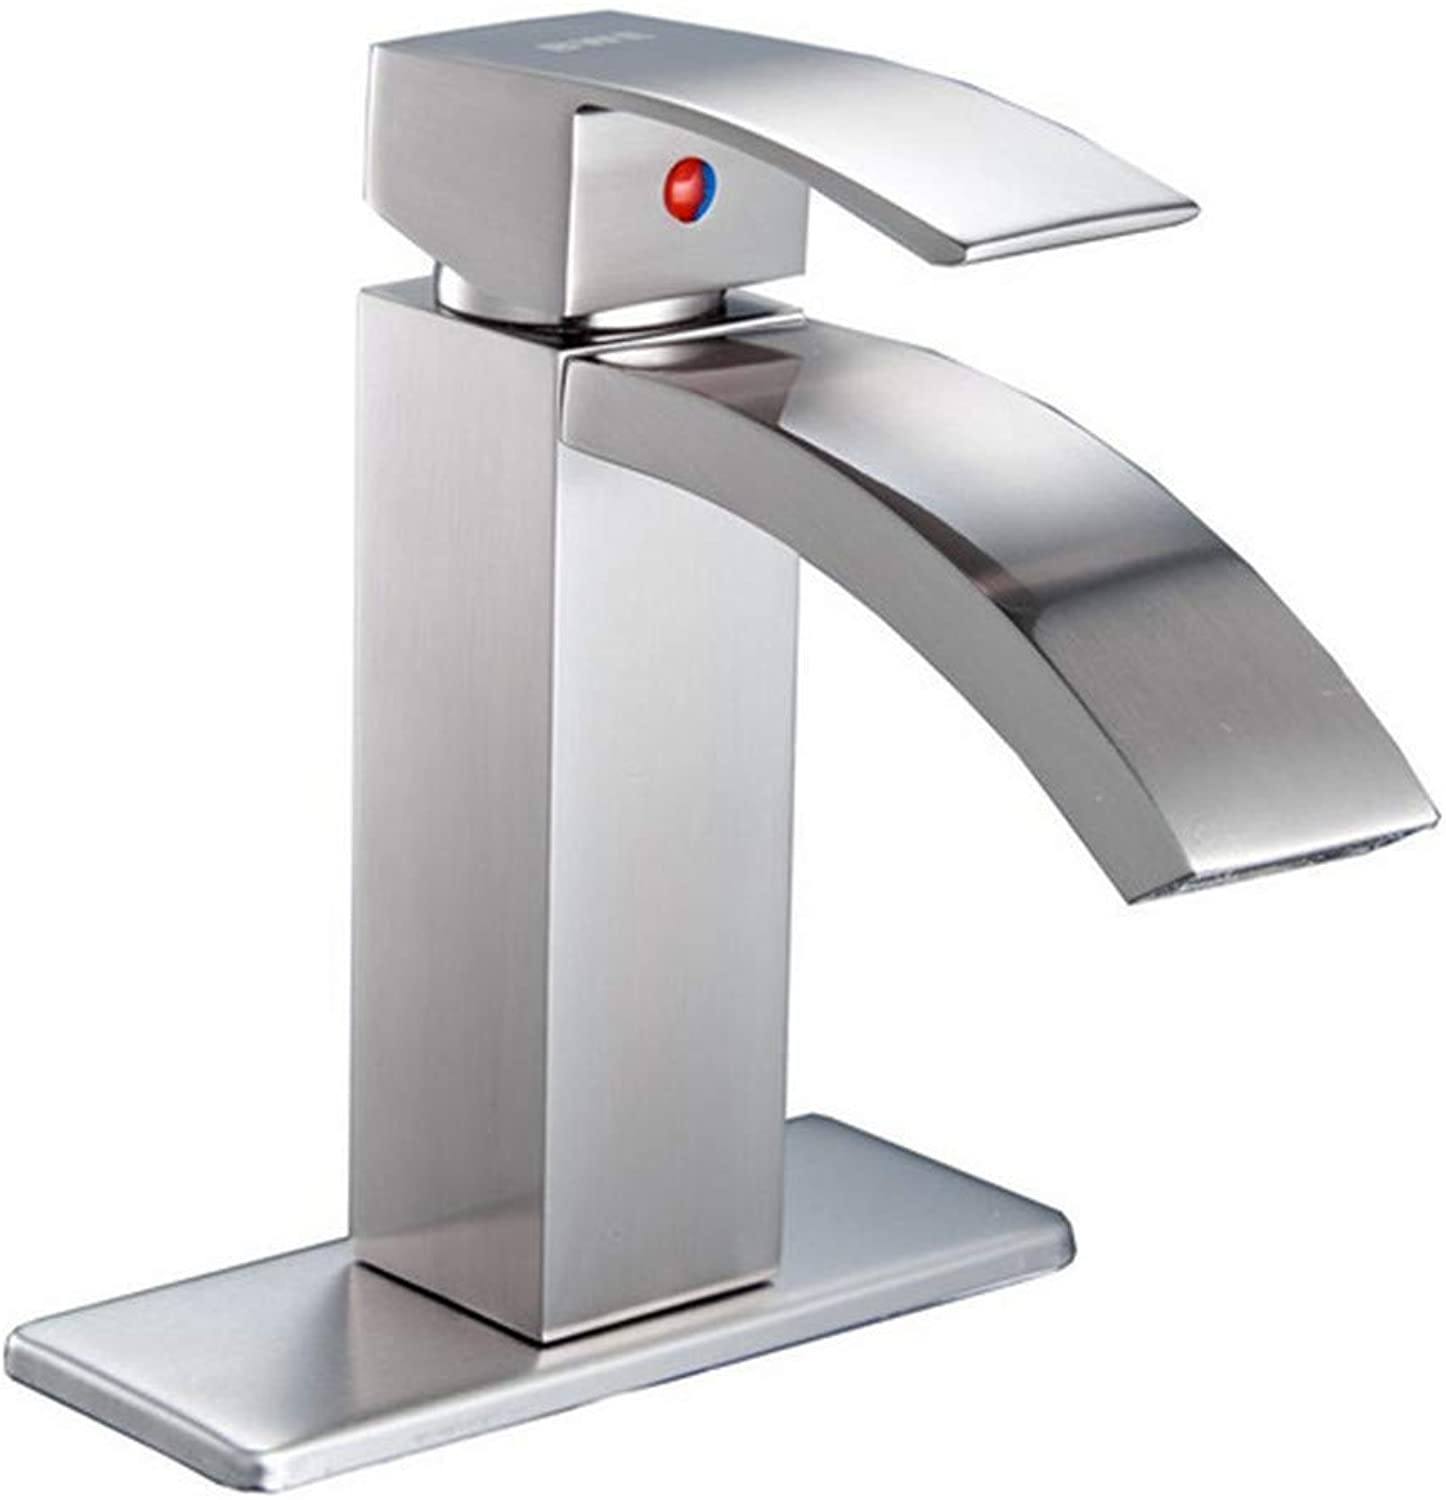 Sink Chrome-Plated Brass Faucets Brushed Nickel Single Handle One Hole Deck Mount Waterfall Bathroom Sink Faucet